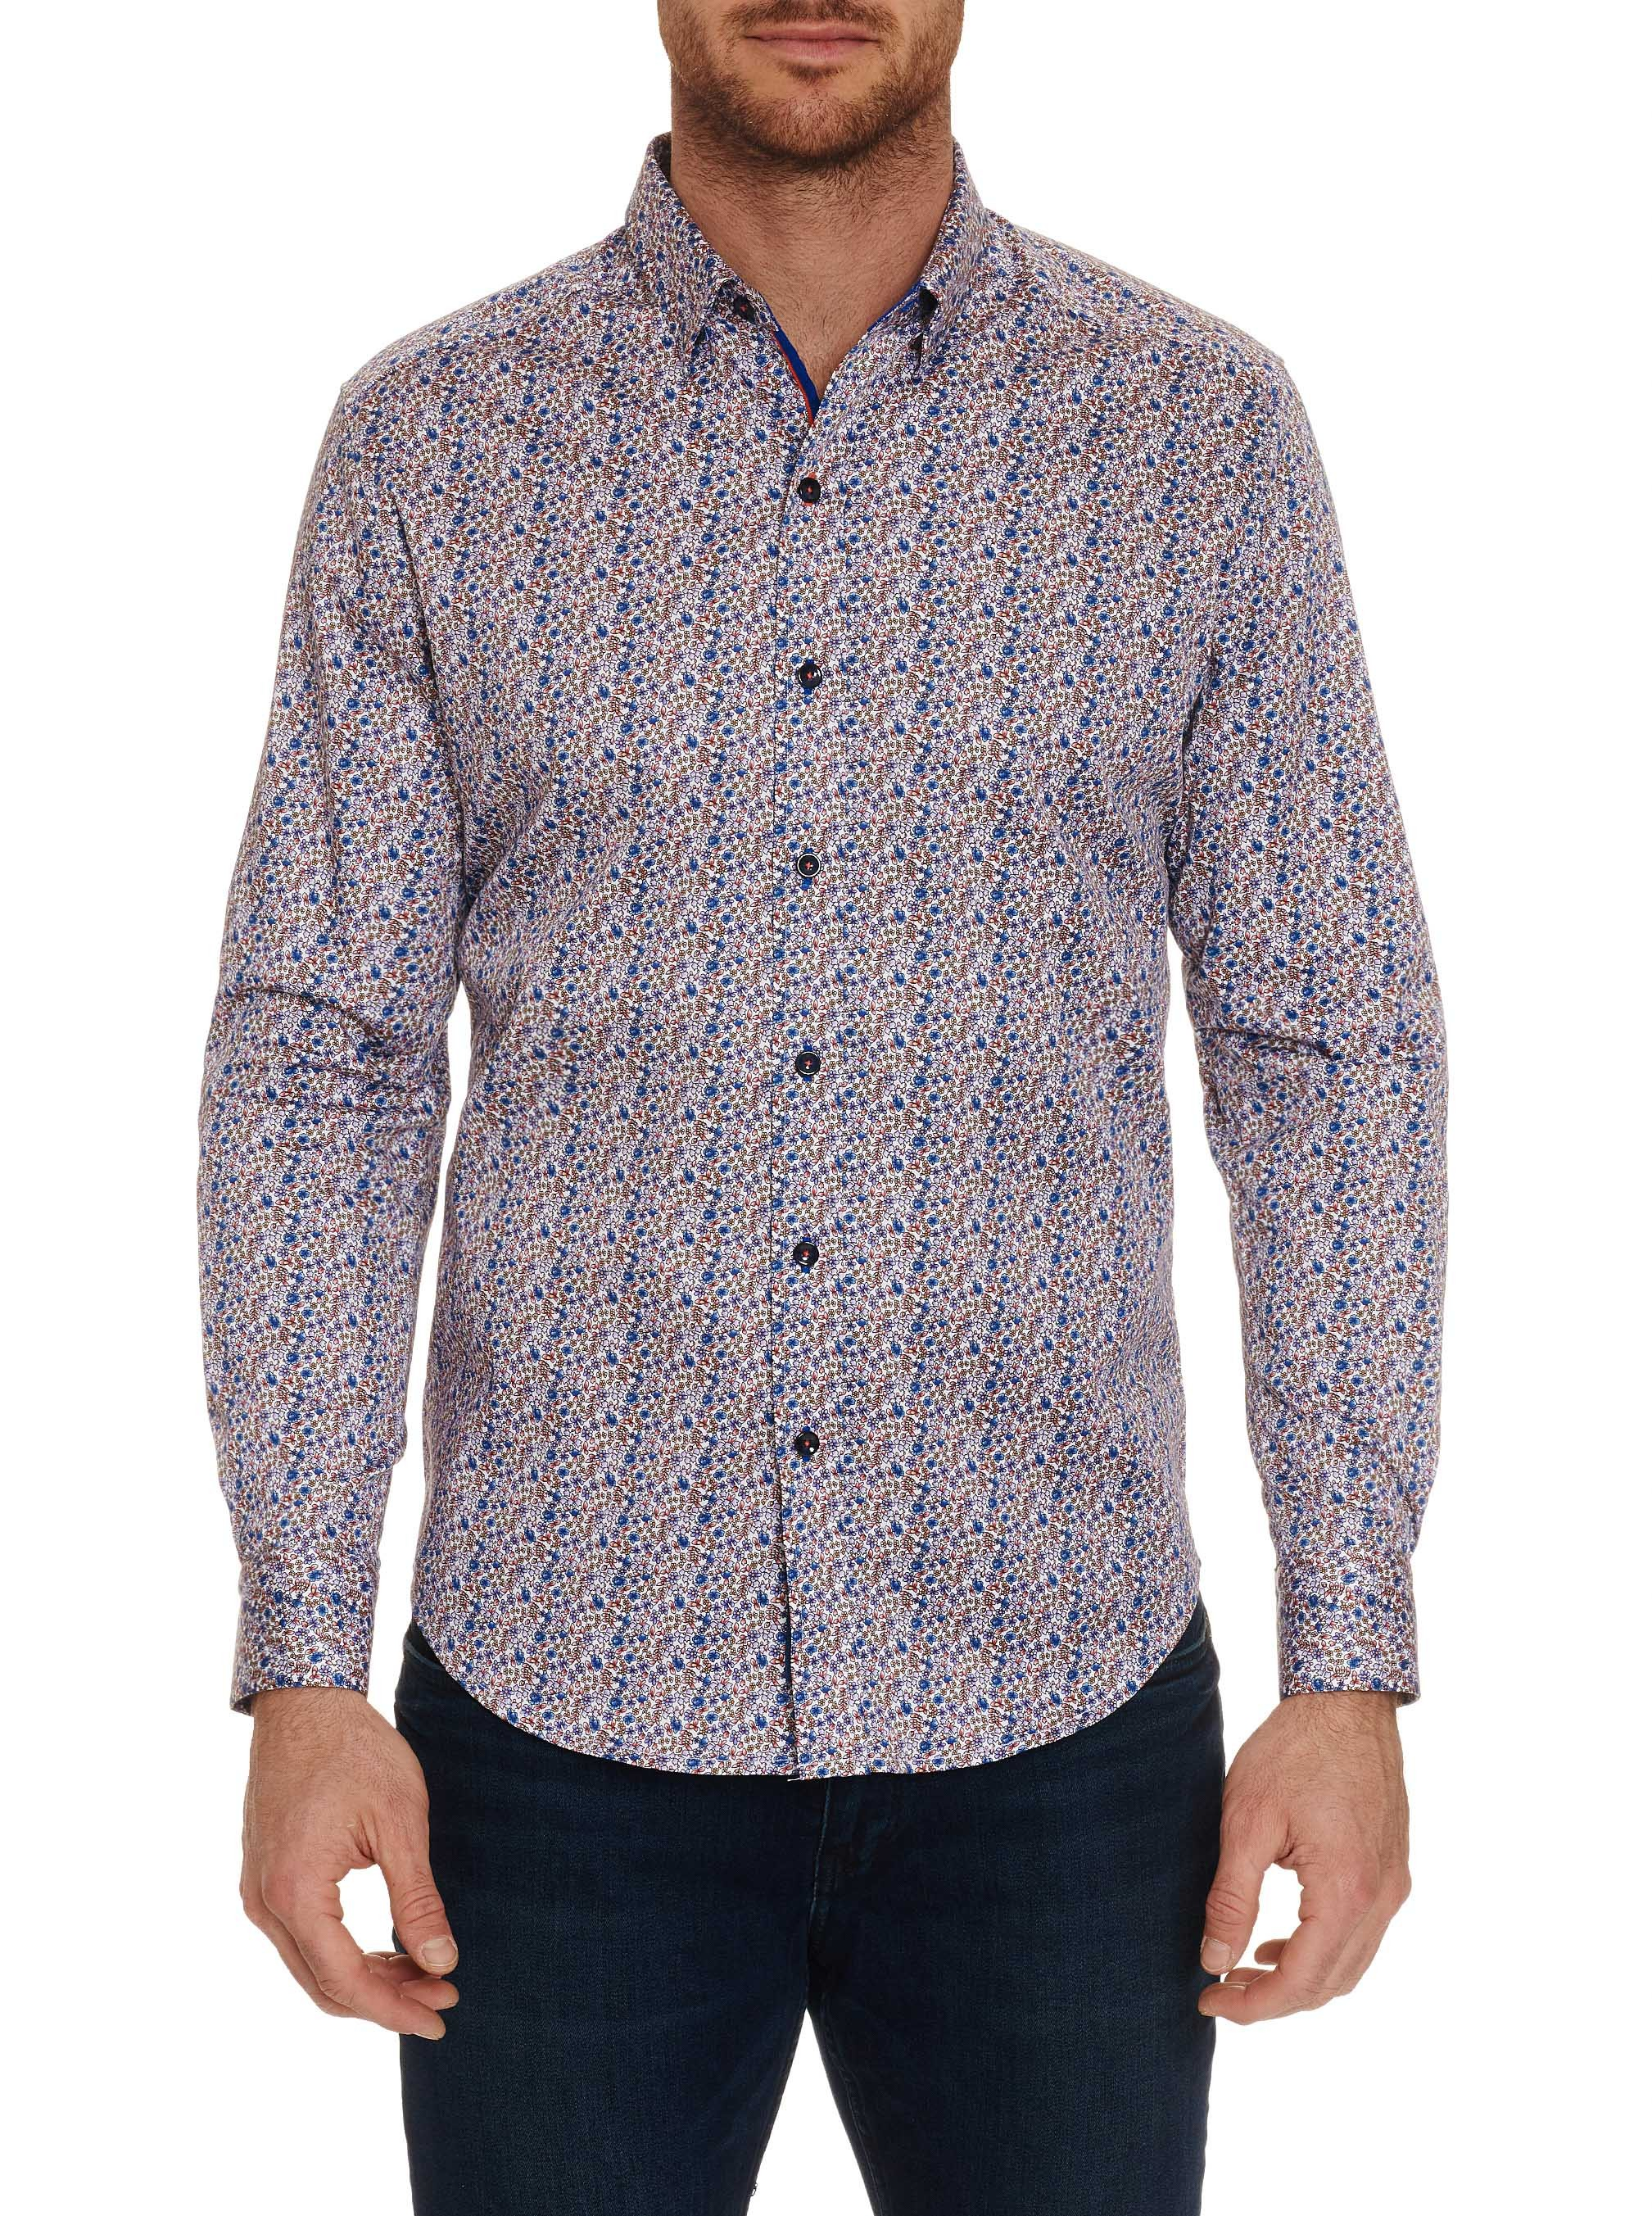 Robert Graham Cardin Tailored Fit Sport Shirt Multi